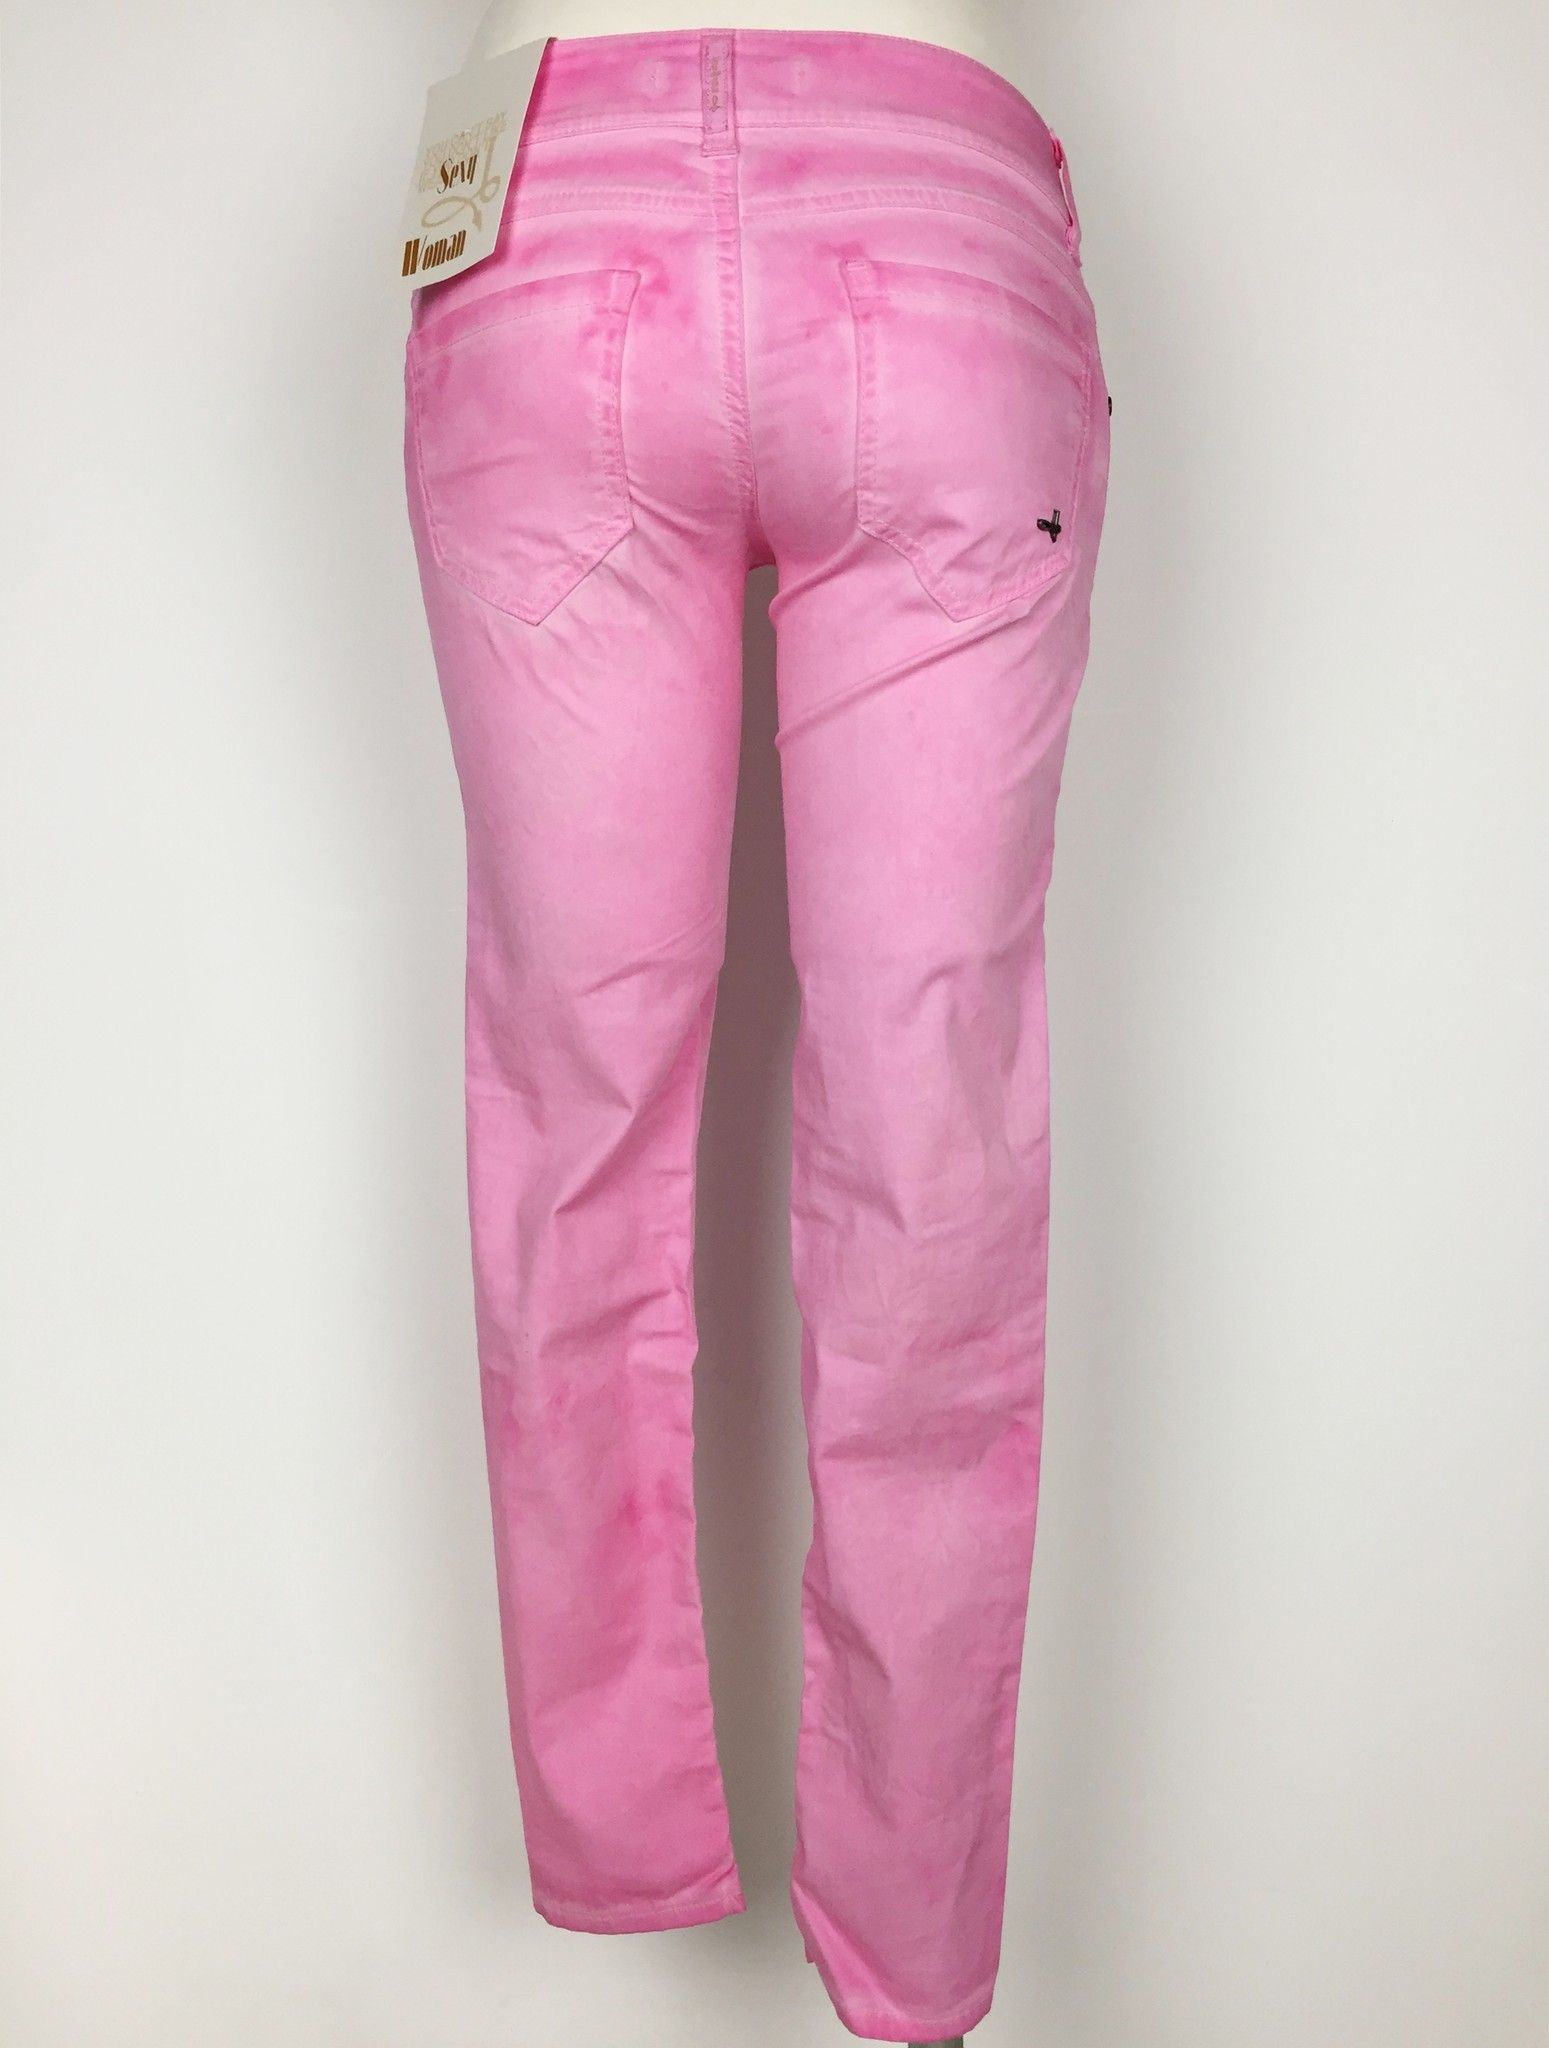 Sexy Woman Lightweight Cotton Jeans with Printed Flowers Cod.P414623